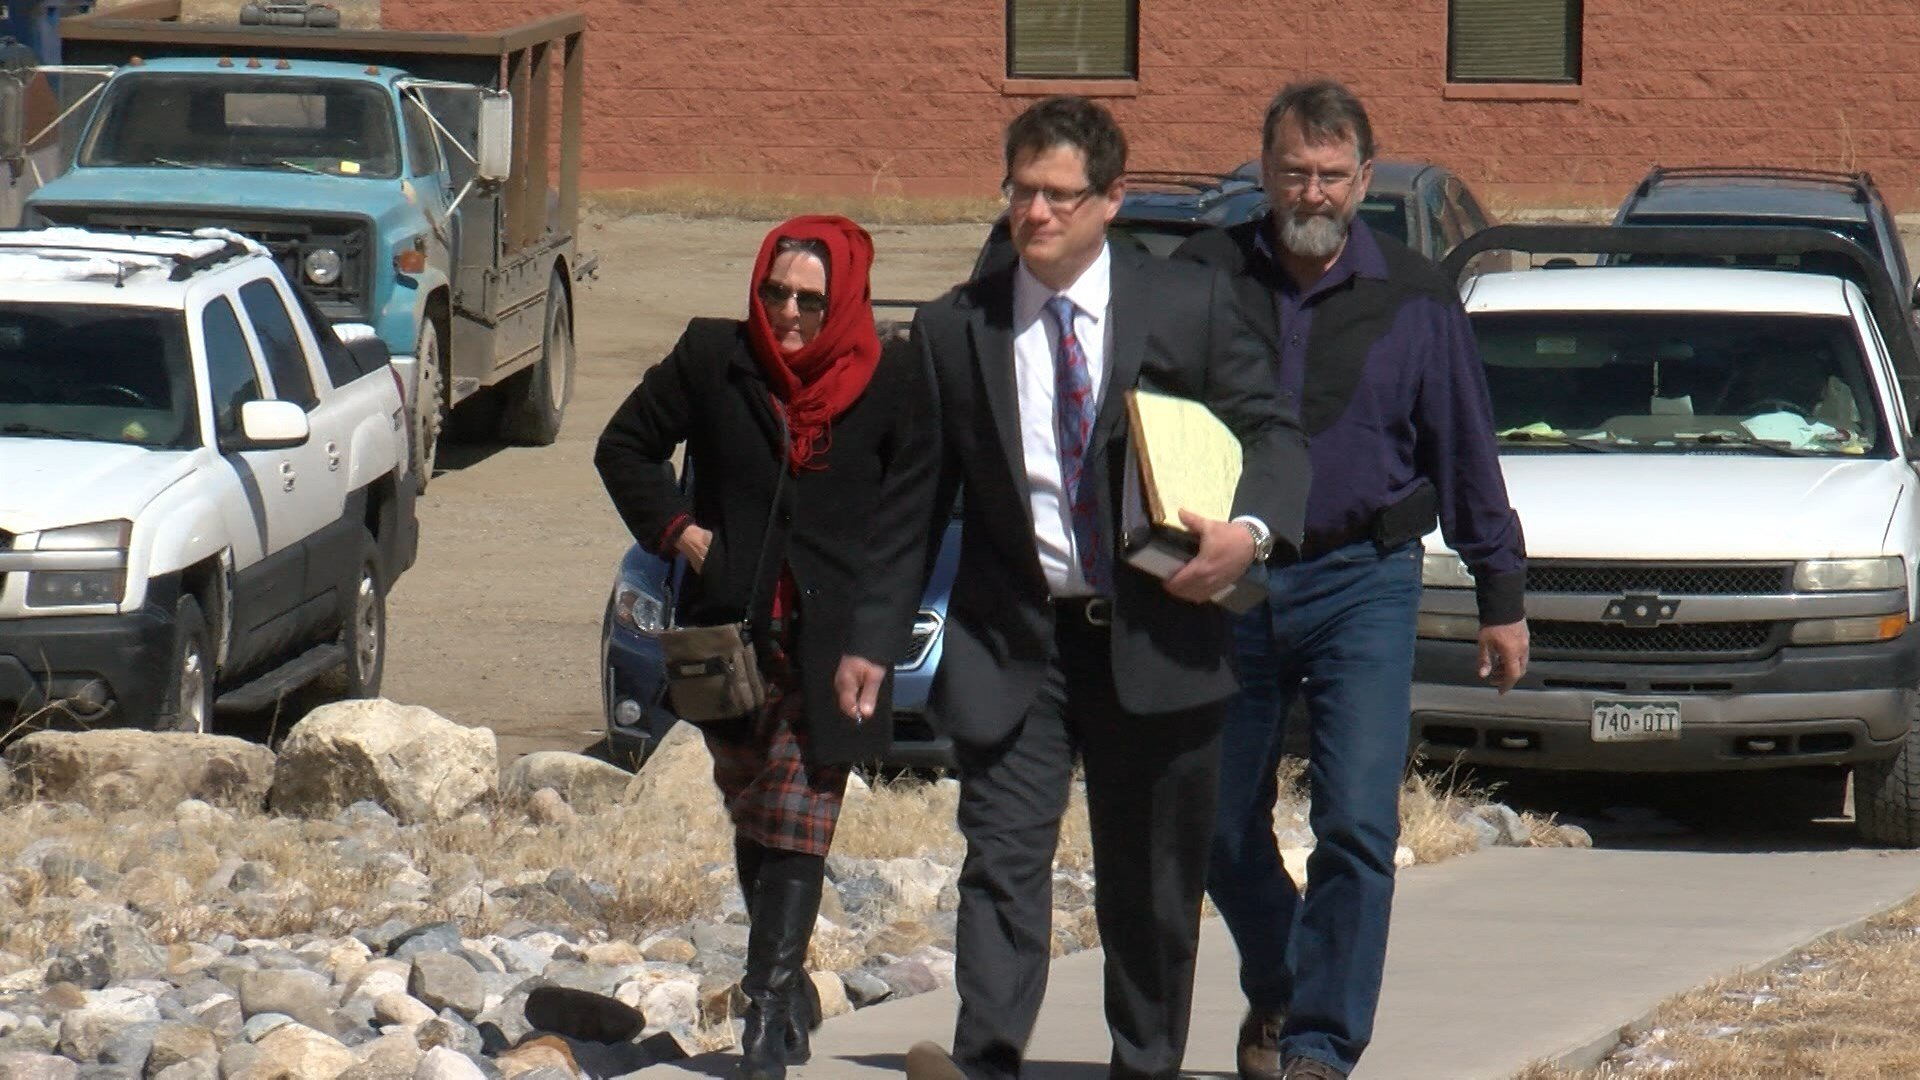 Torin and Rena Smith, along with their attorney walk into the Park County Courthouse Monday afternoon